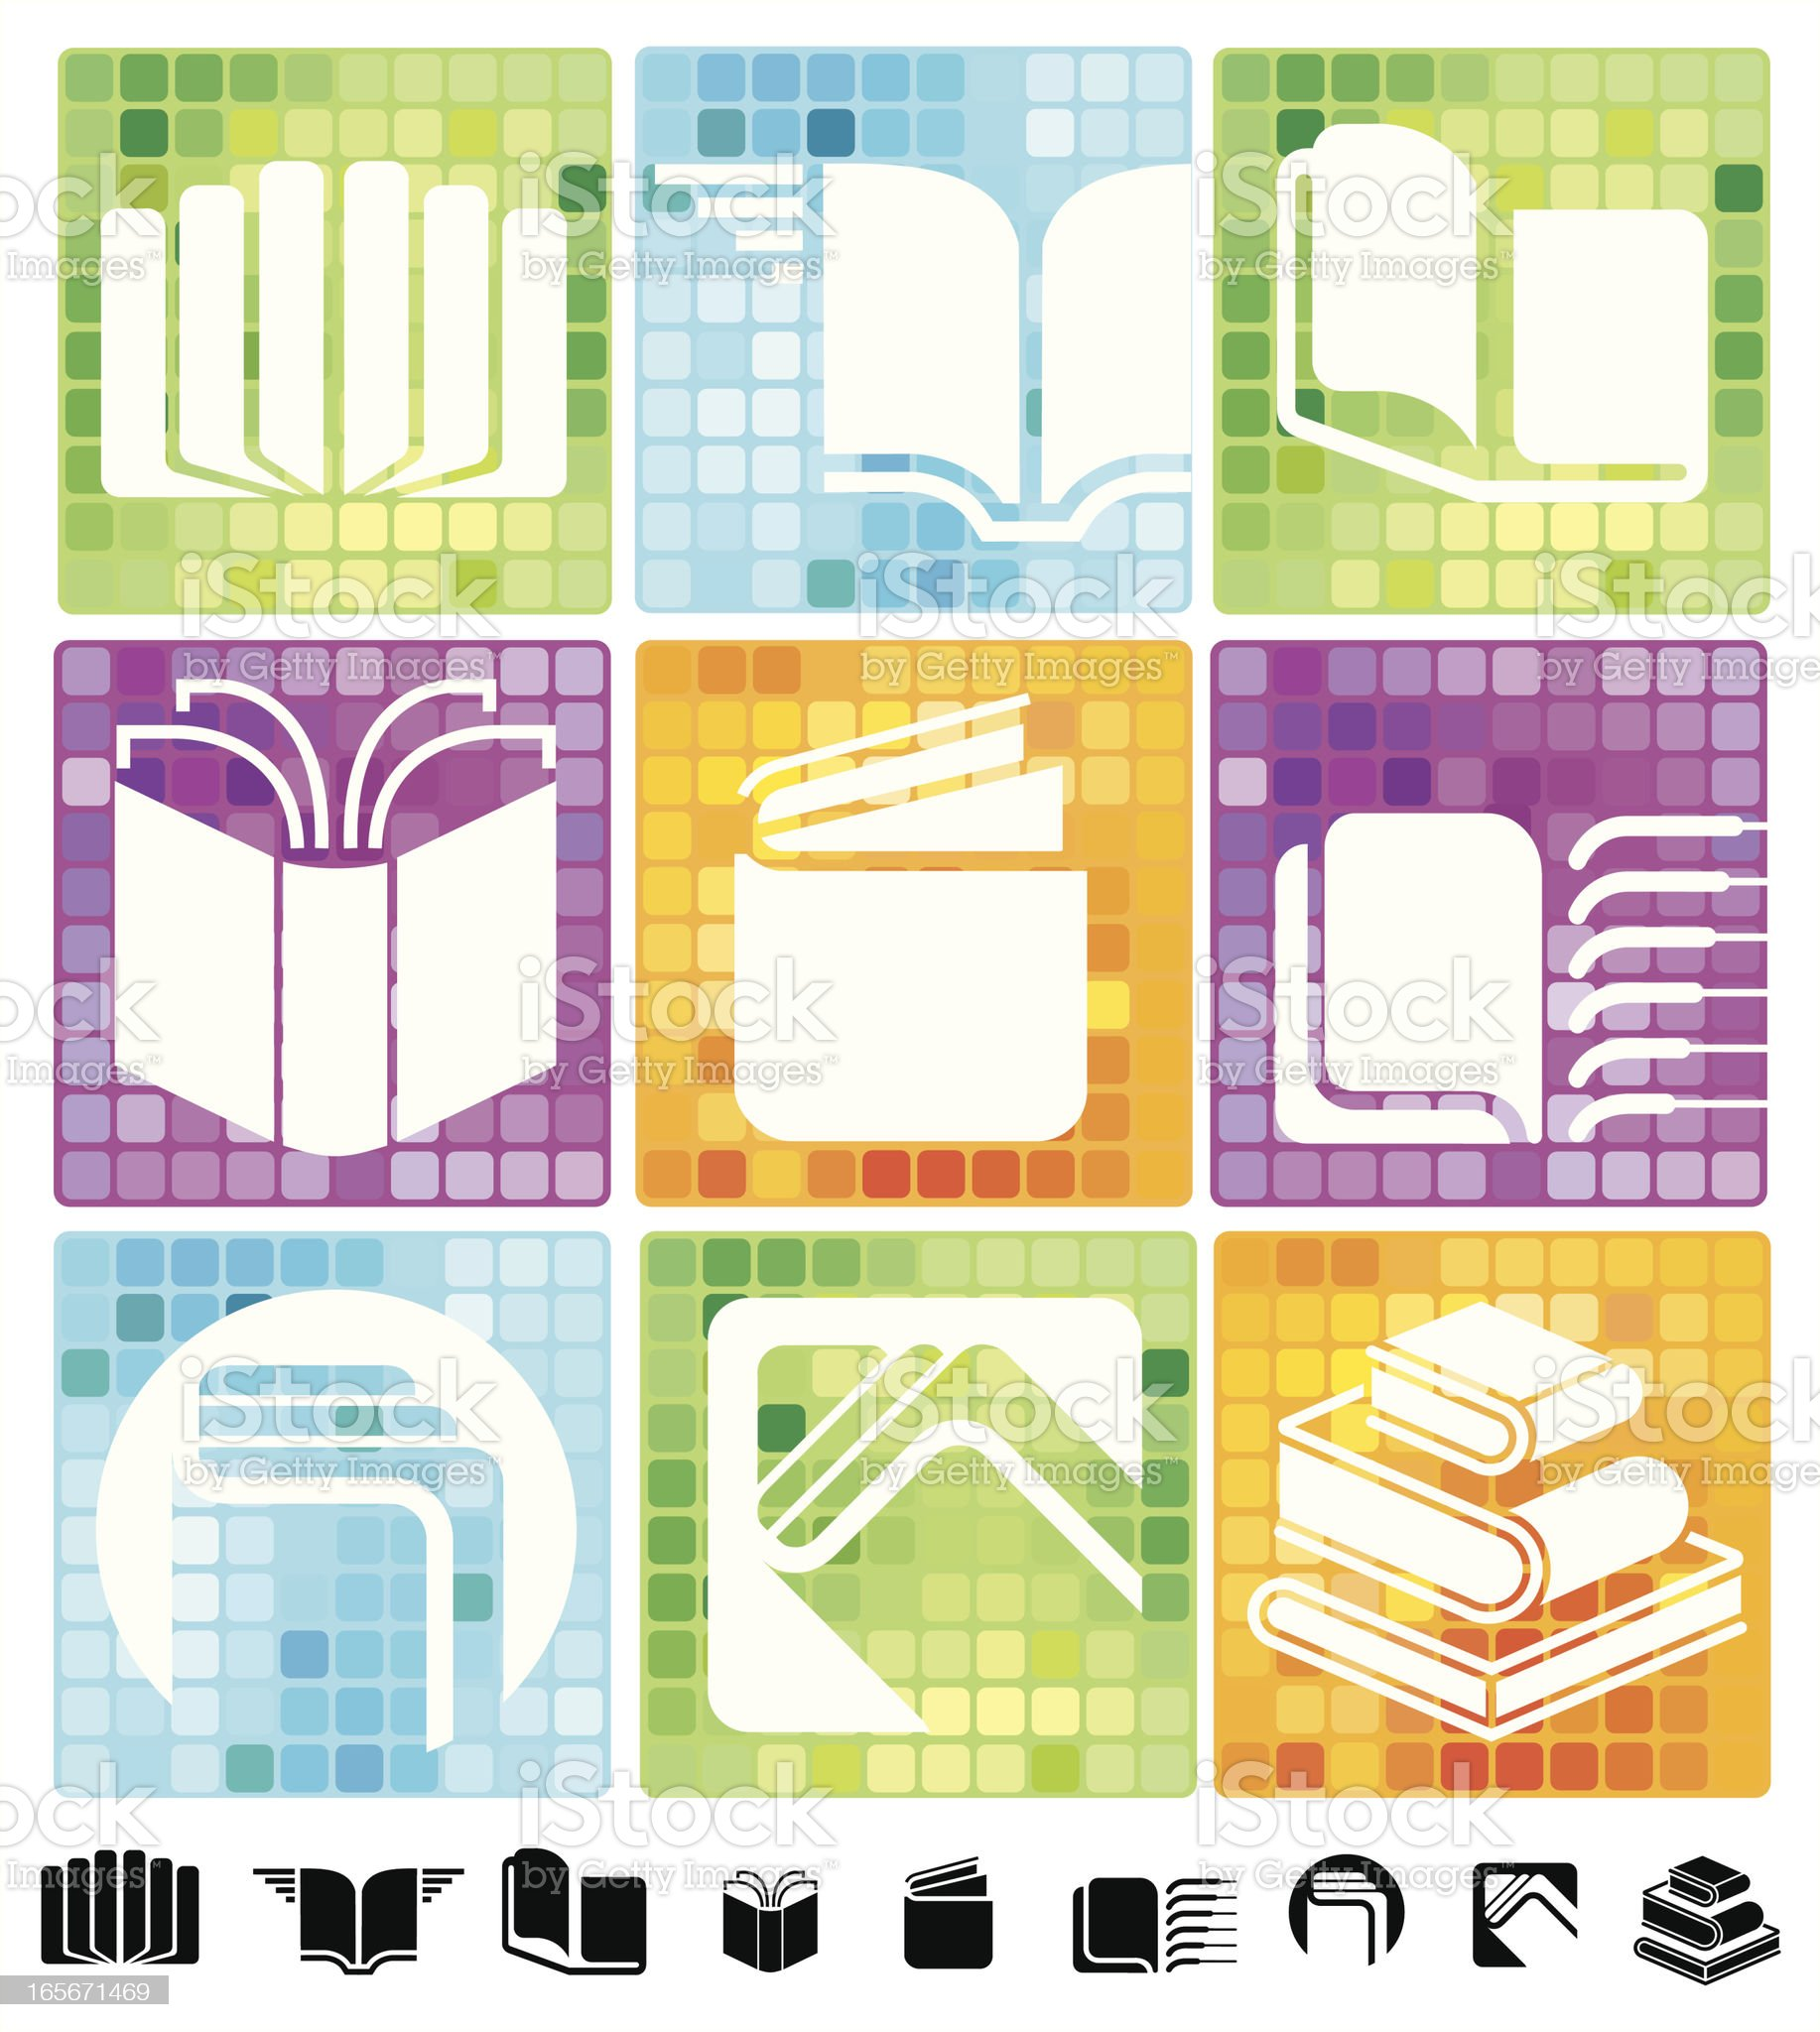 Books icons with mosaic background royalty-free stock vector art